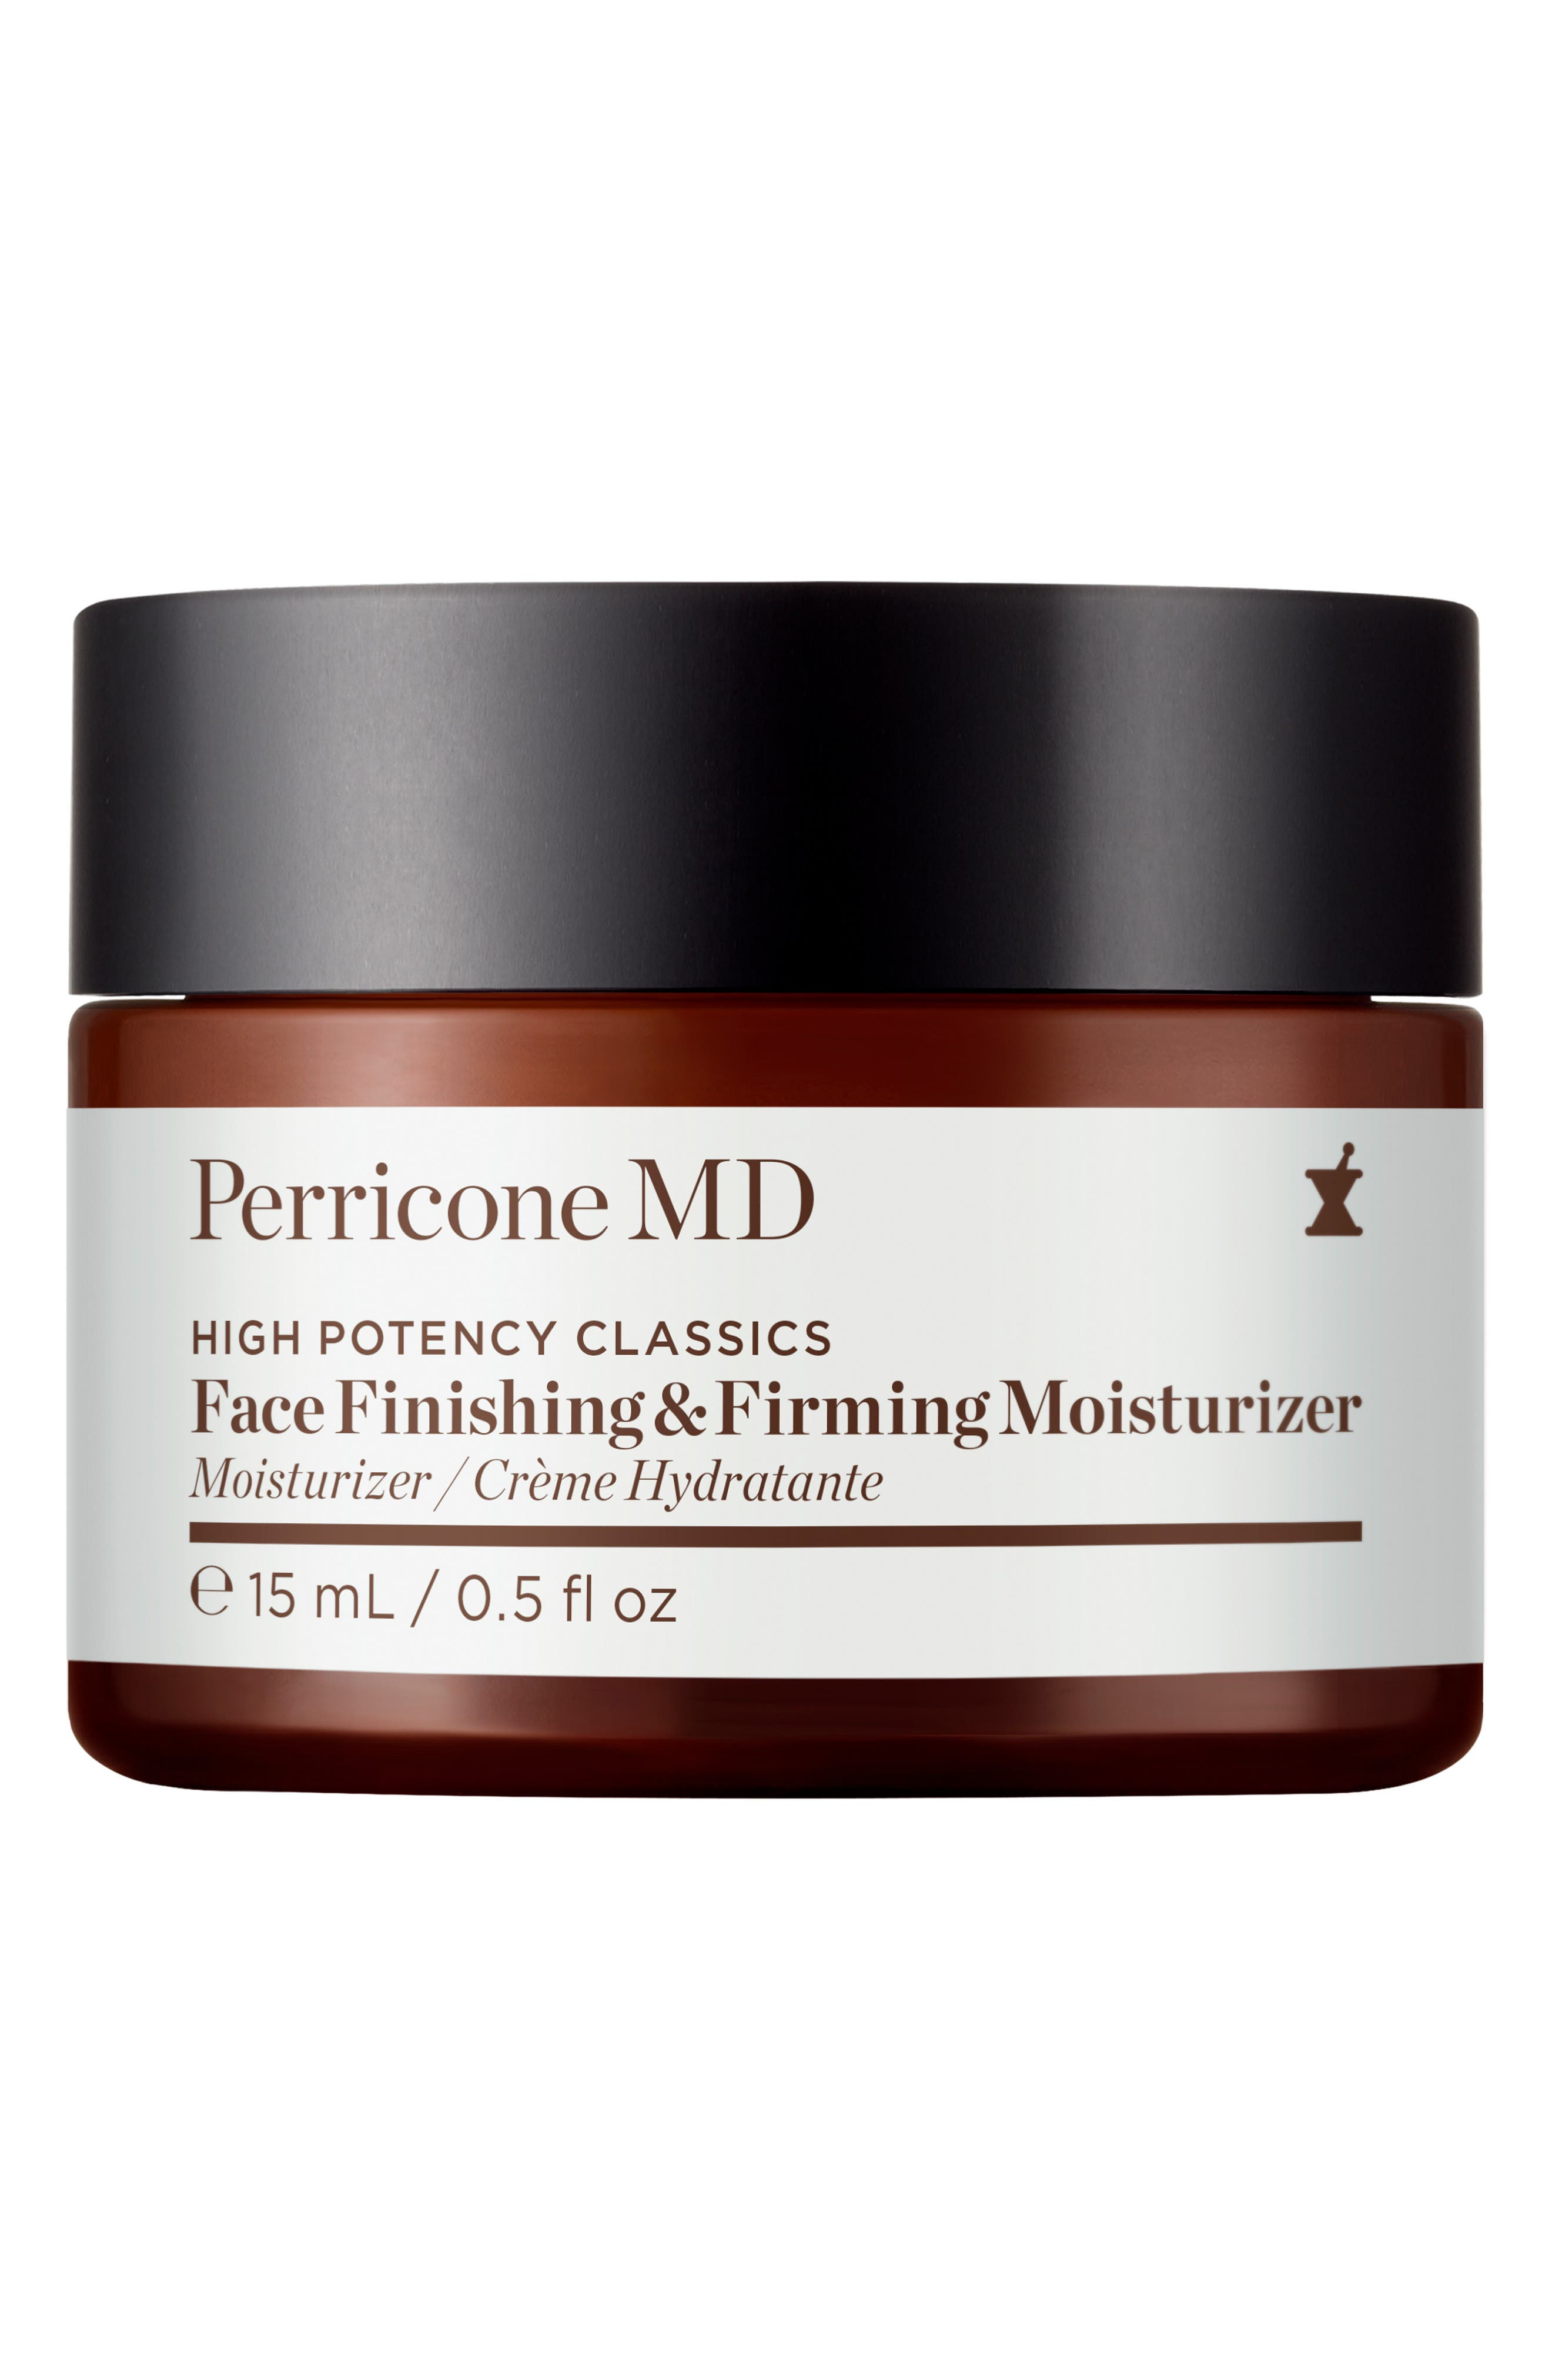 High Potency Classics Face Finishing & Firming Moisturizer,                             Alternate thumbnail 7, color,                             NO COLOR